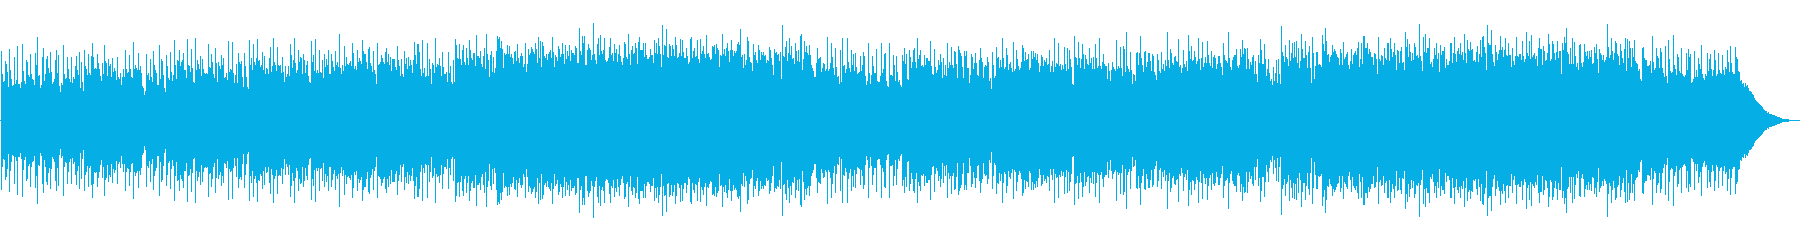 A refreshing and light live violin's reproduced waveform